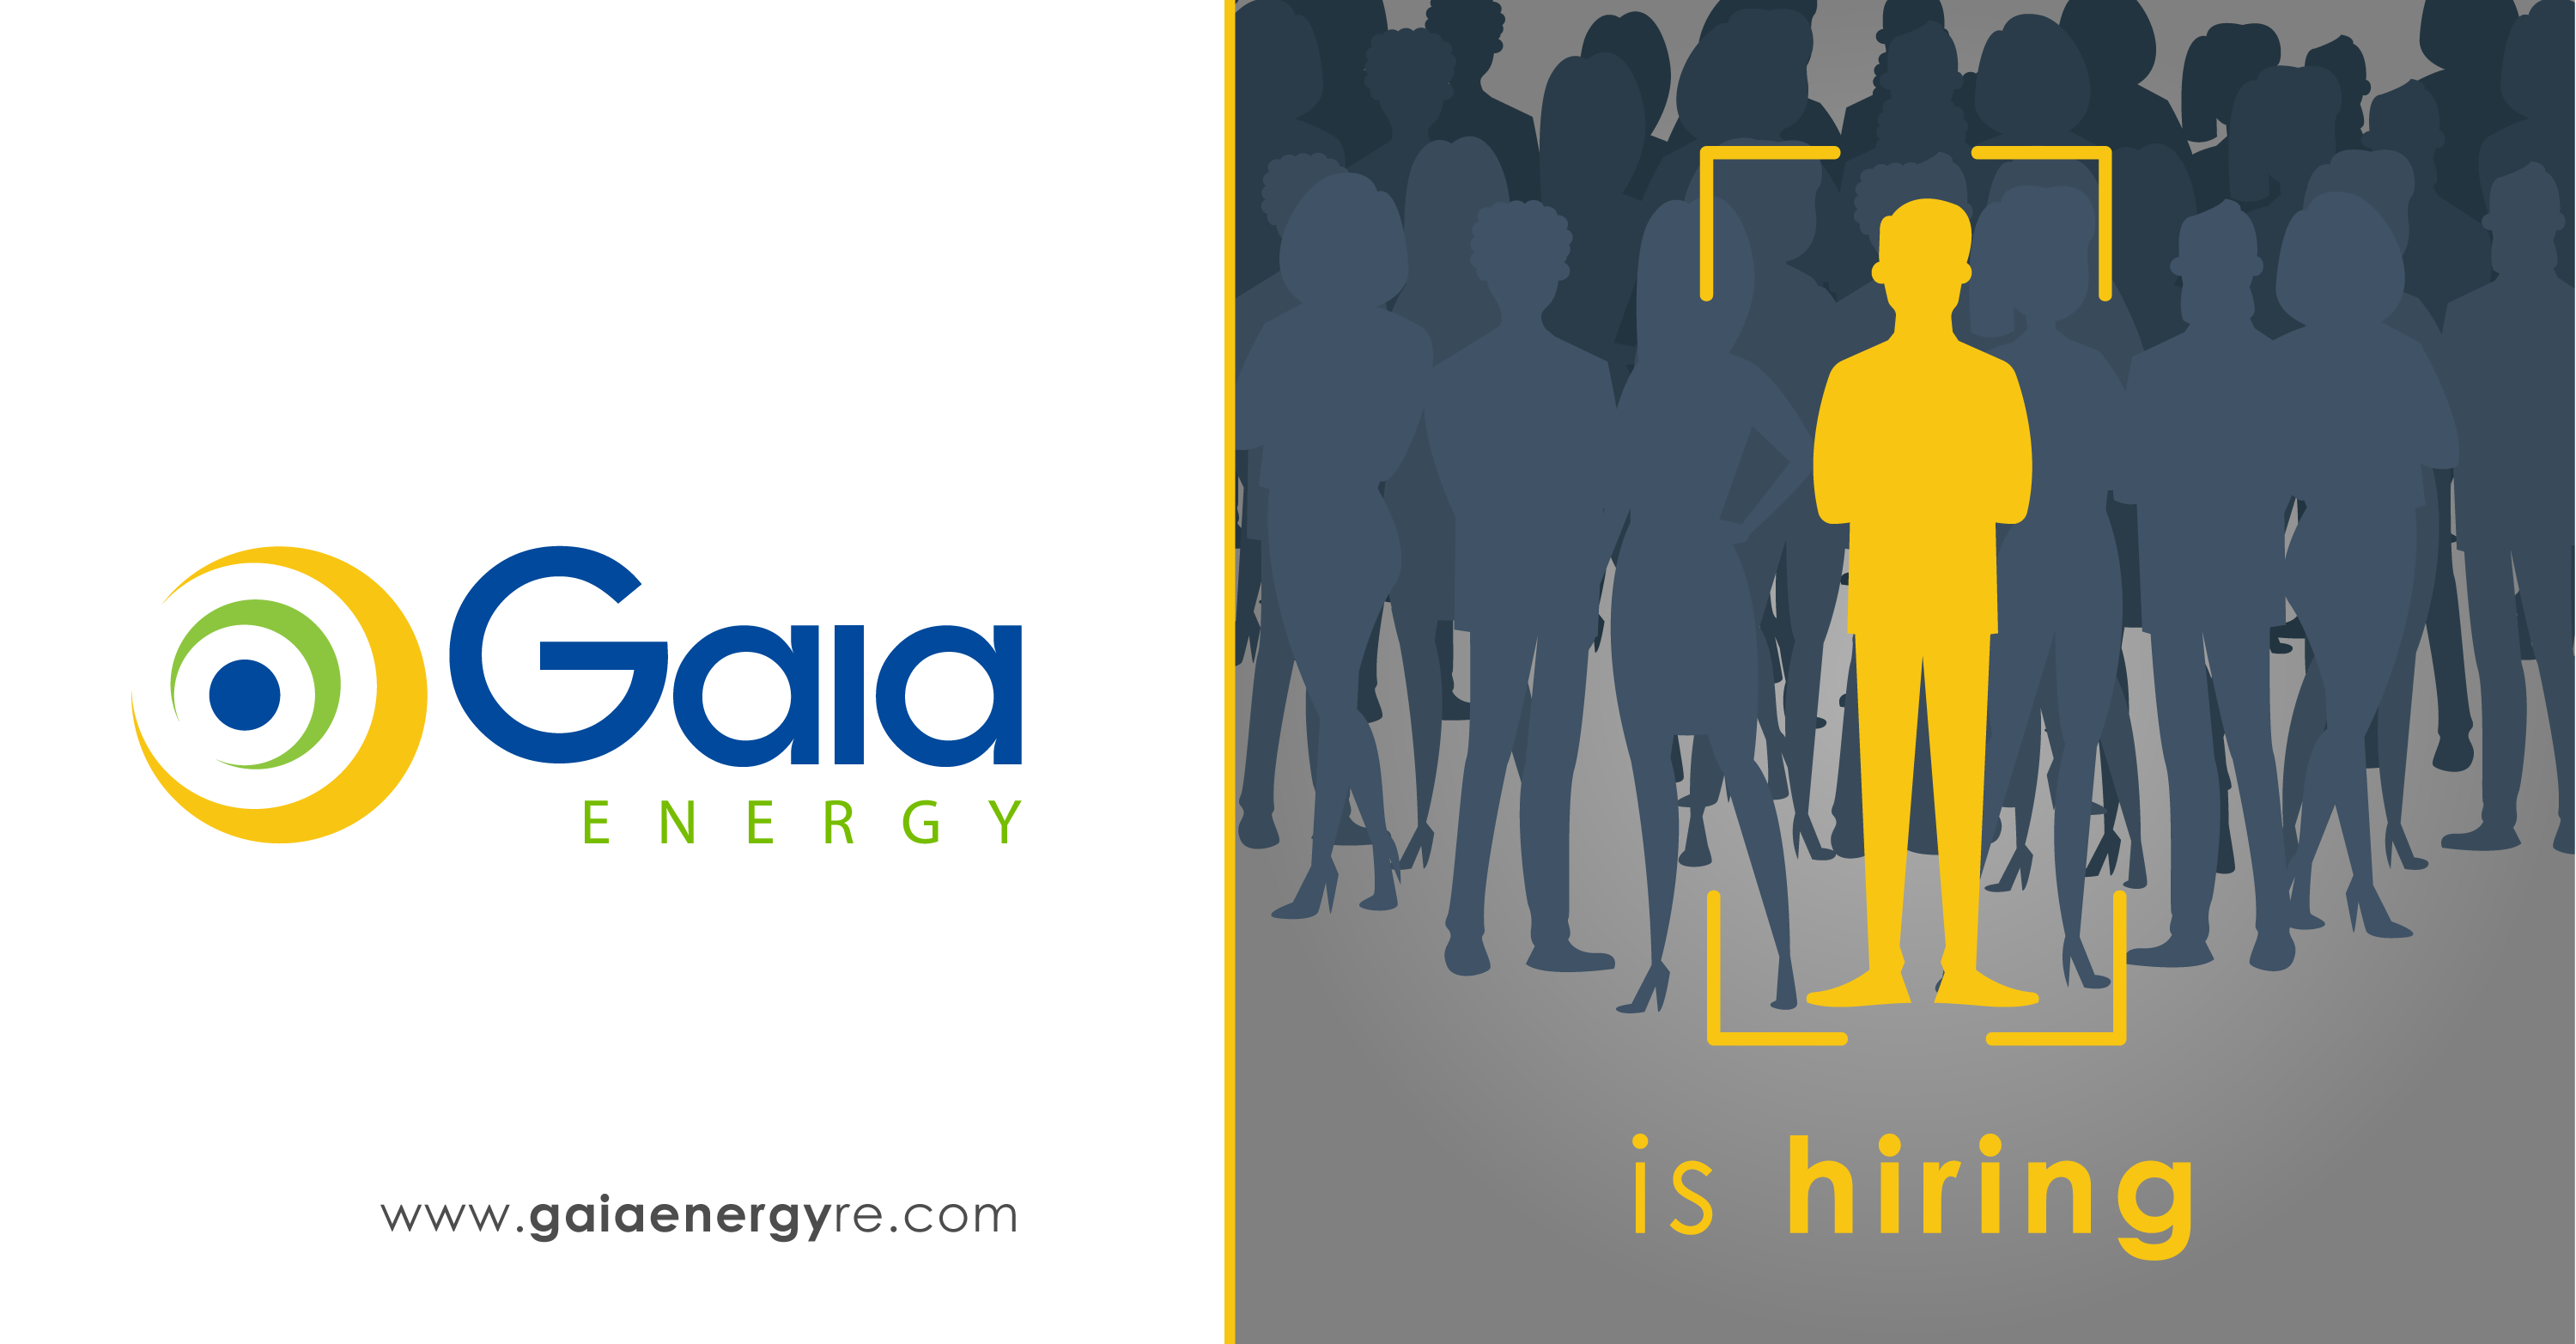 SENIOR BUSINESS DEVELOPER - Tanzania – Gaia Energy